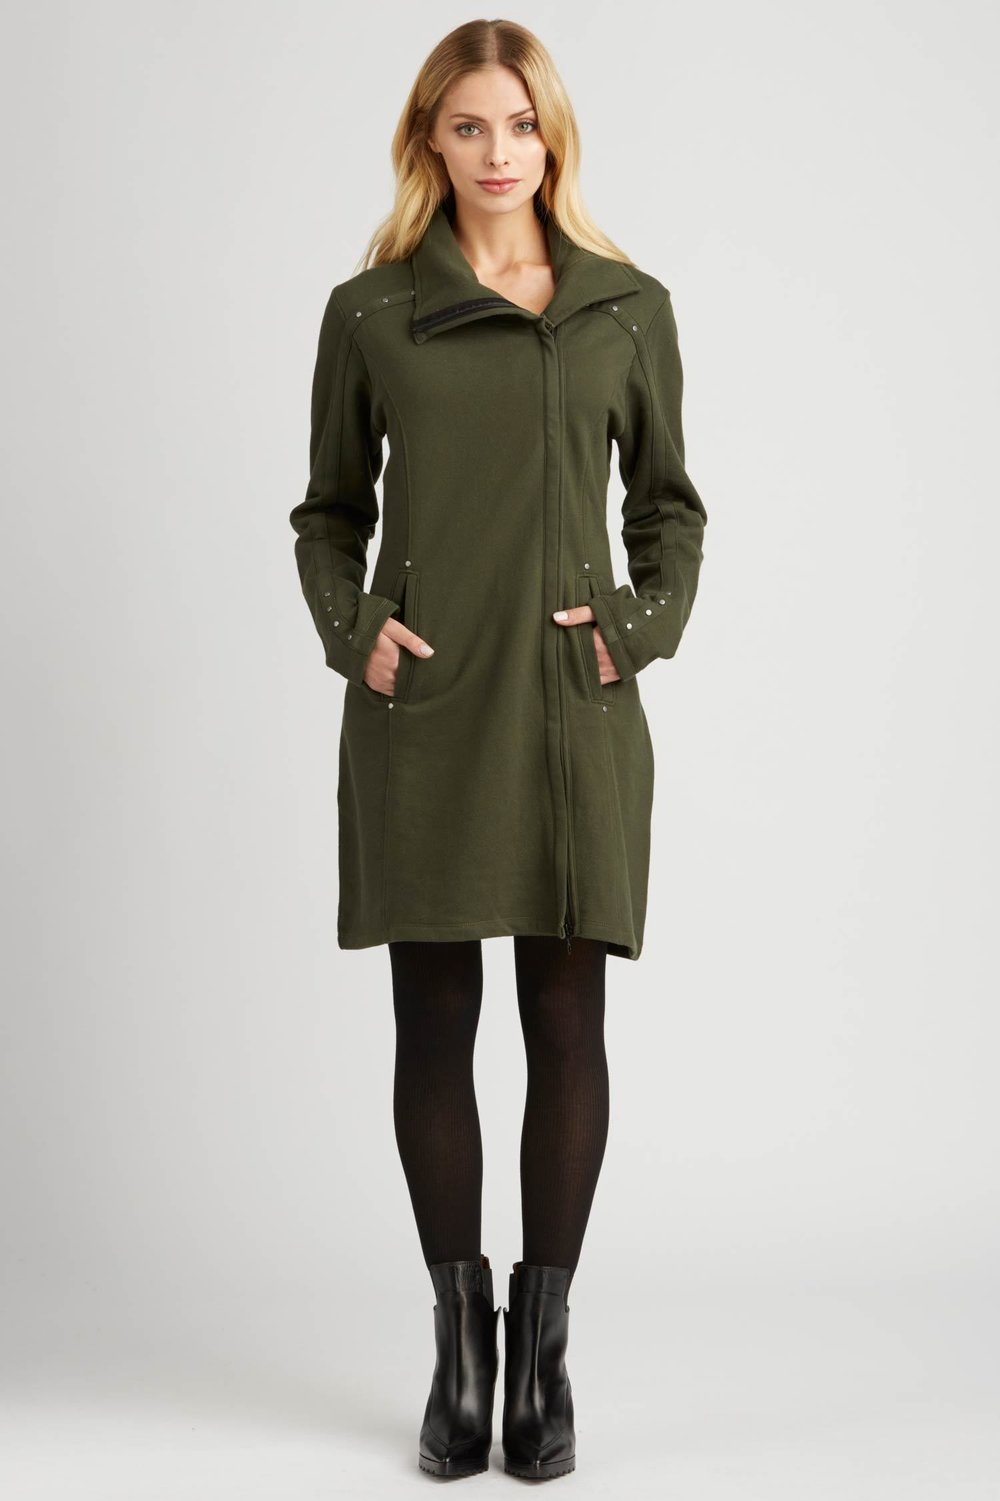 Women's Urban Zip Coat | $133.50 (normally $178)   *Unrelated side-note: this girl looks like a blonde version of Jessica Jones